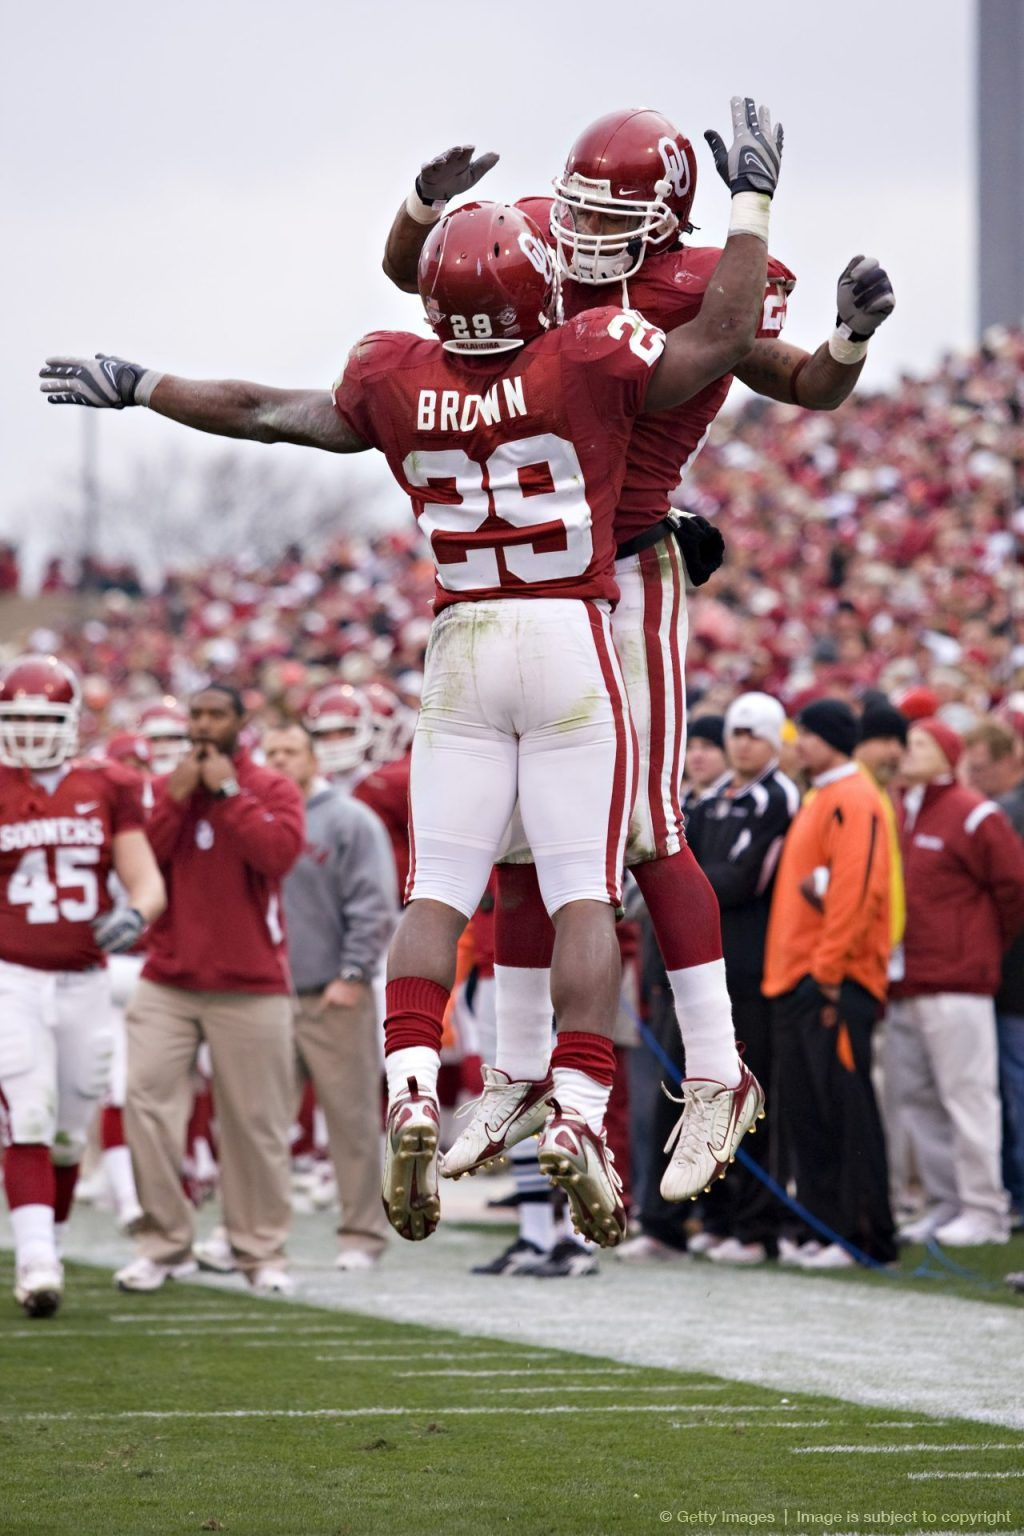 Image Detail For Norman Ok November 24 Chris Brown 29 Of The Oklahoma Sooners Celebrates Aft Oklahoma Memorial Oklahoma Sooners Oklahoma Sooners Football